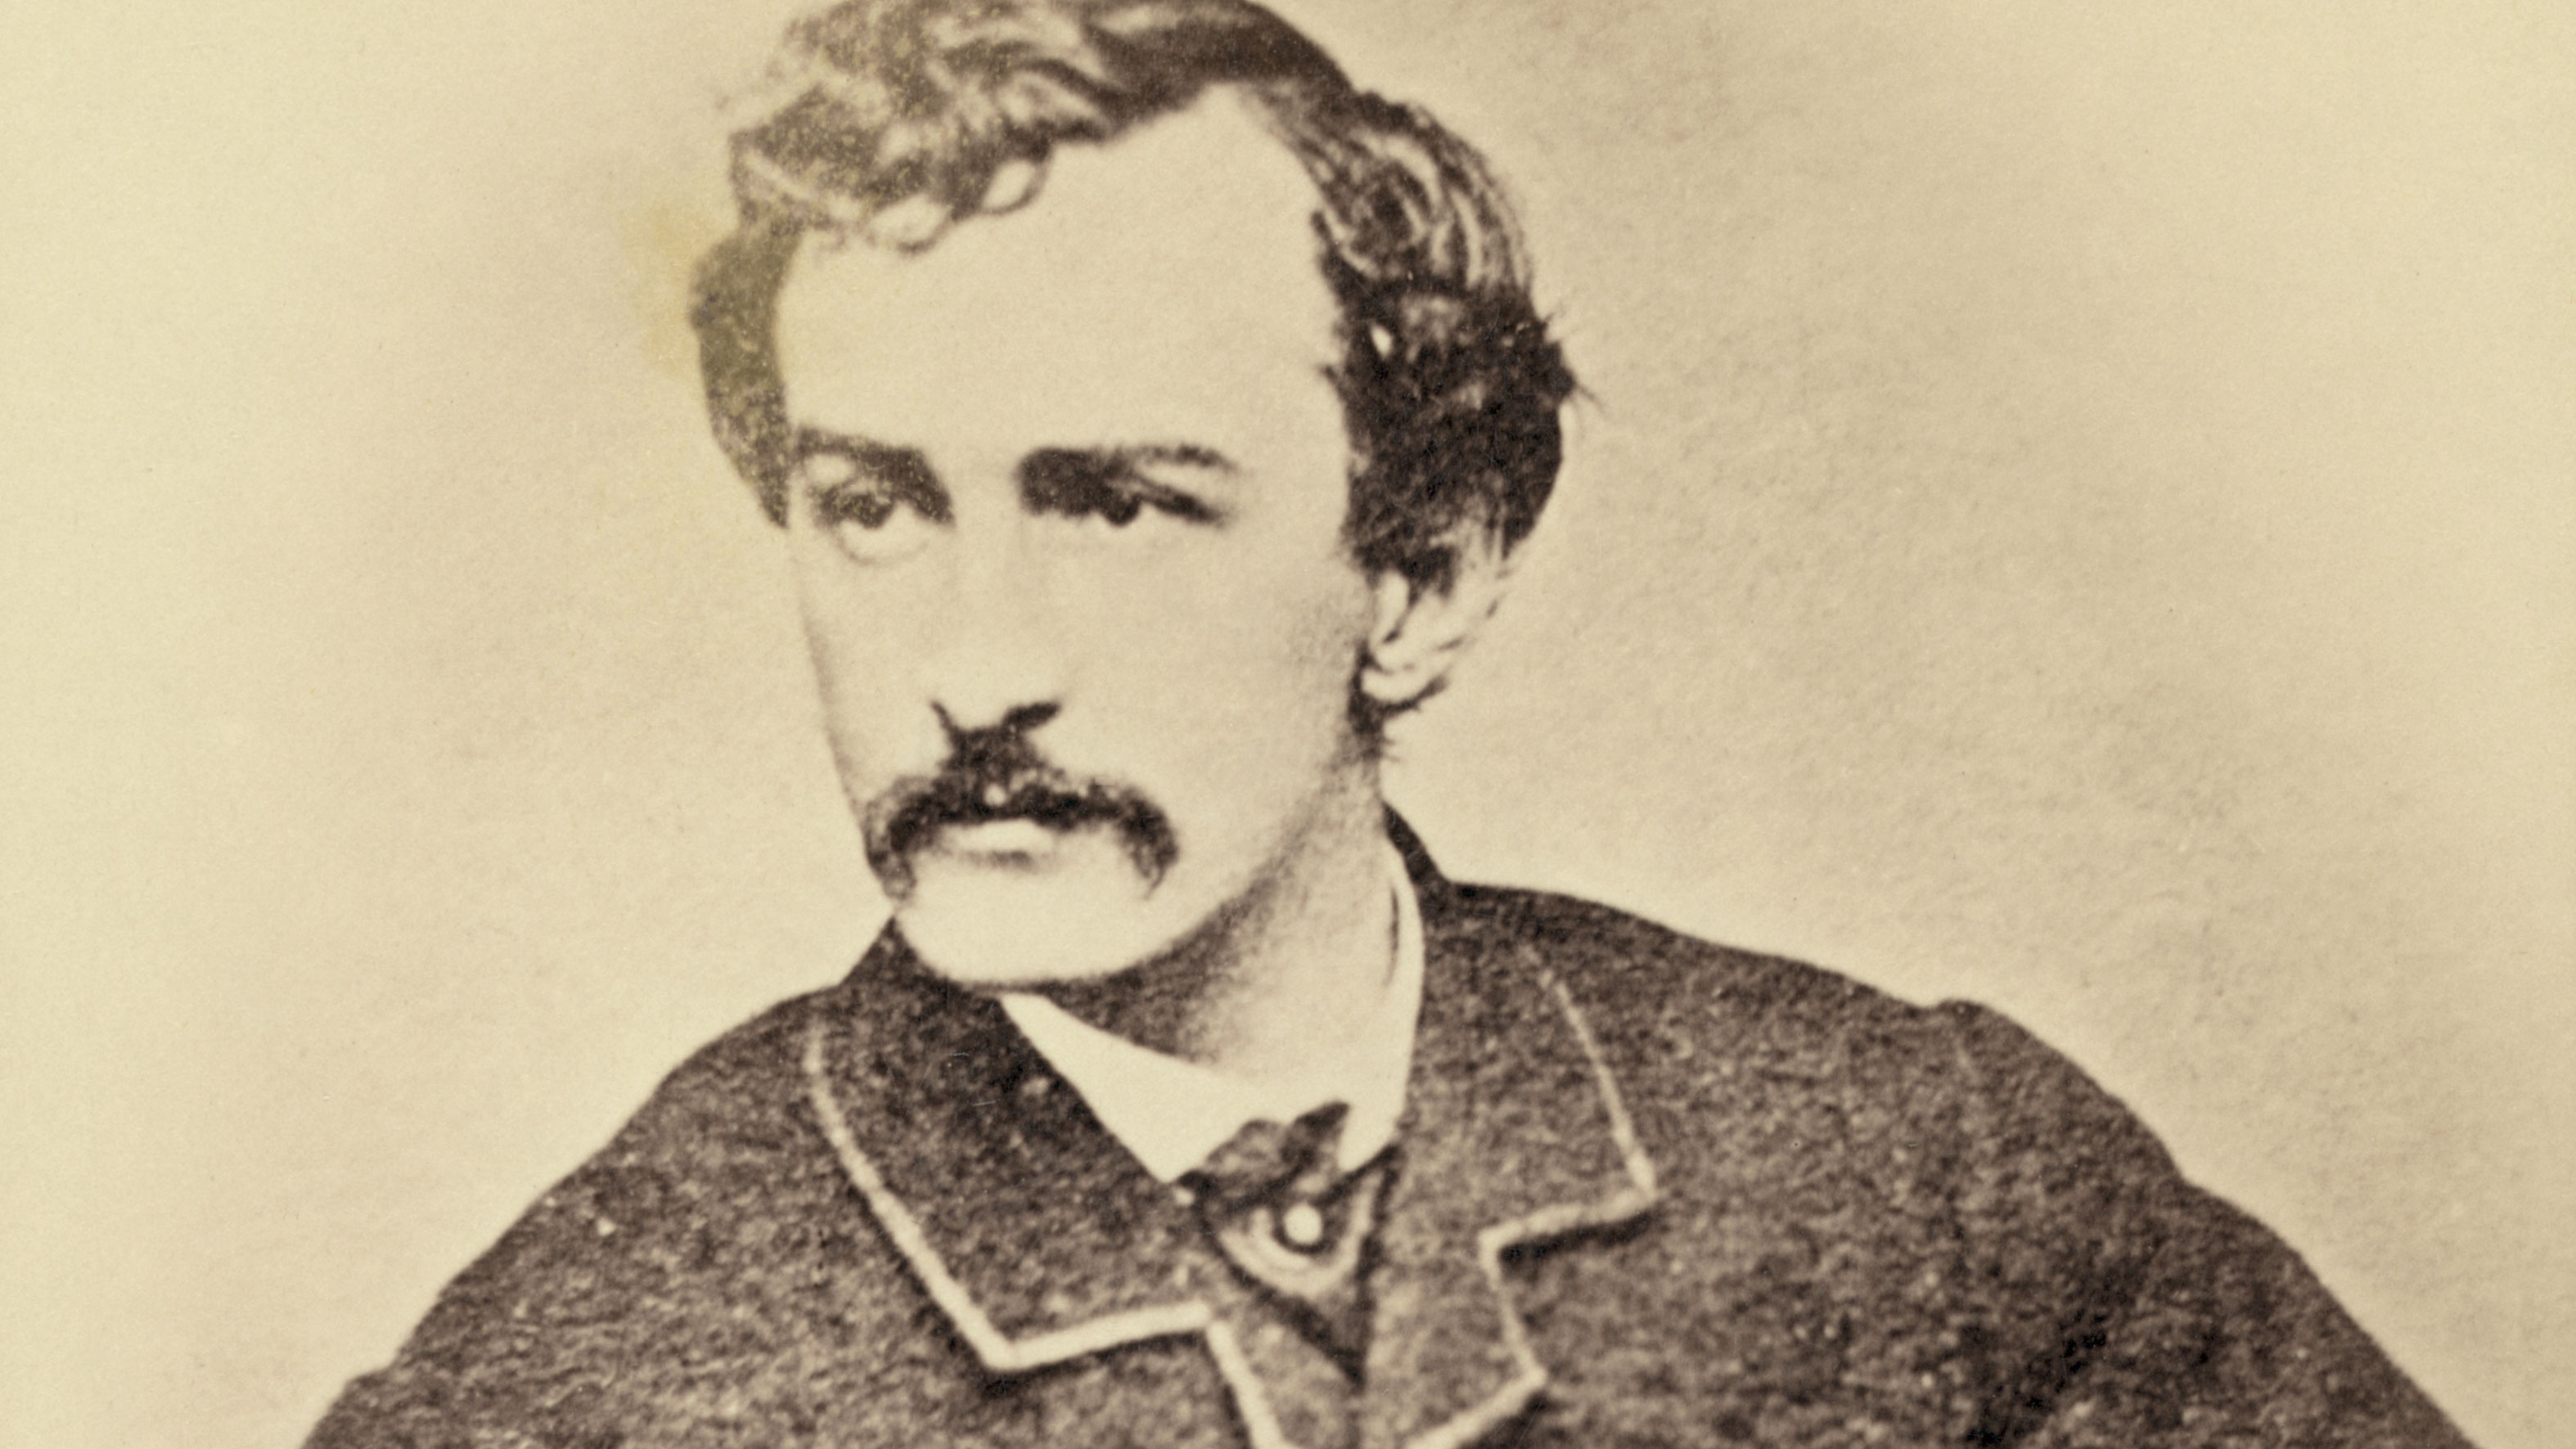 The Final Days of John Wilkes Booth